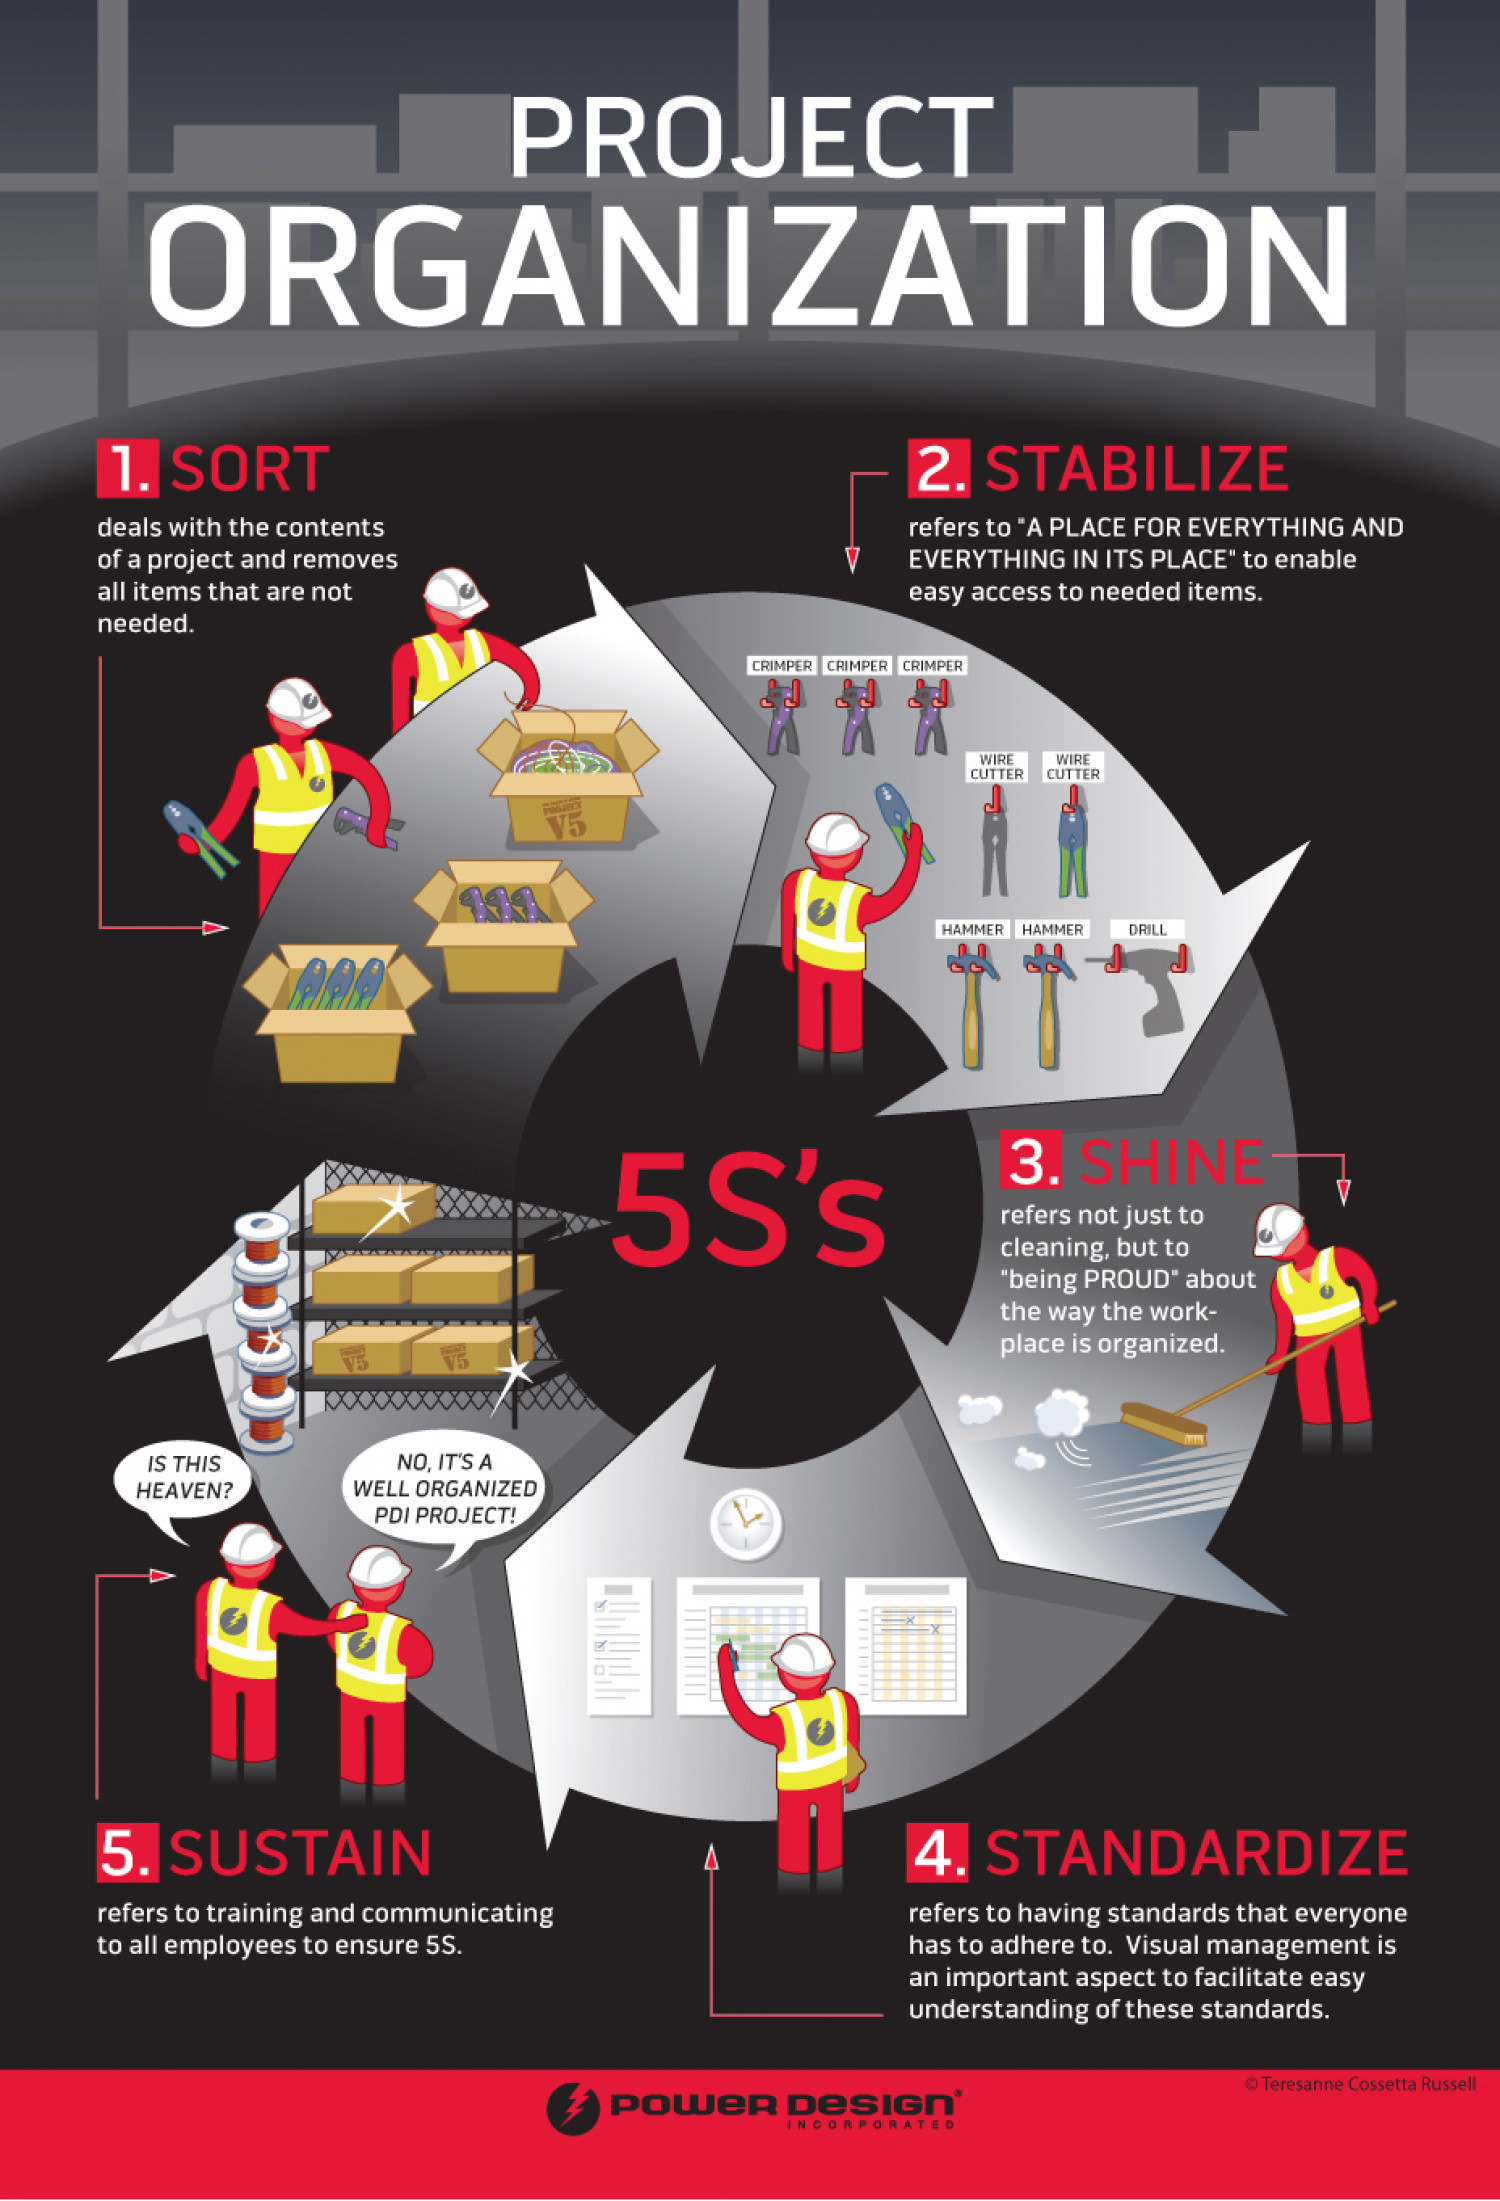 Project Organization Infographic